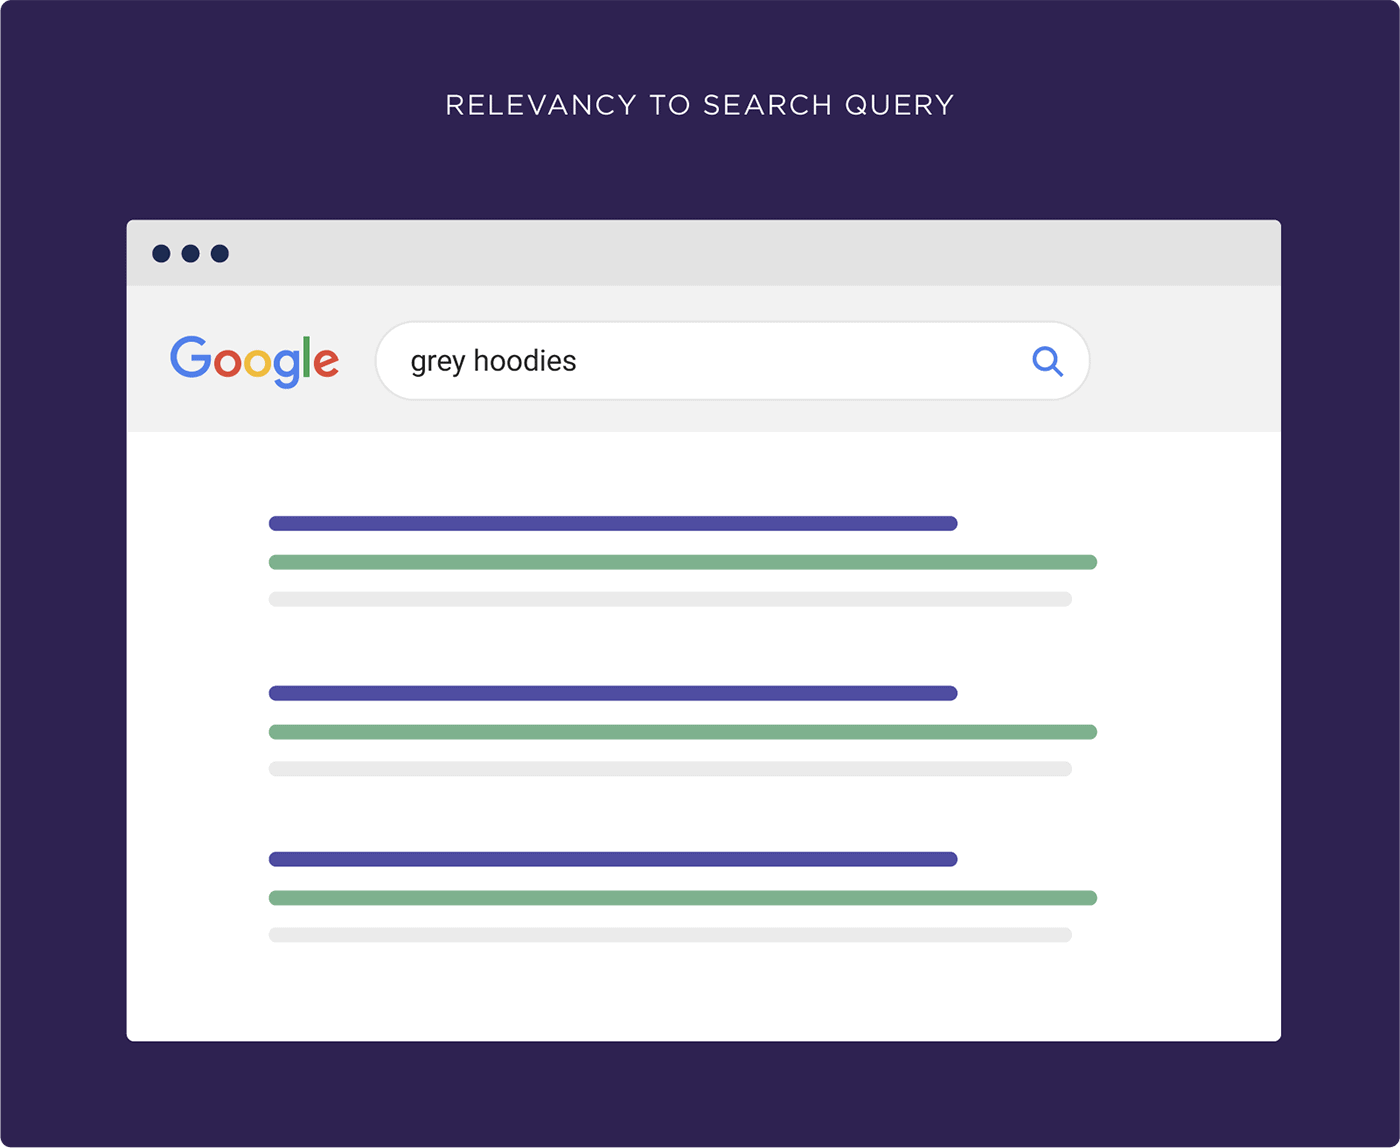 Relevancy to search query